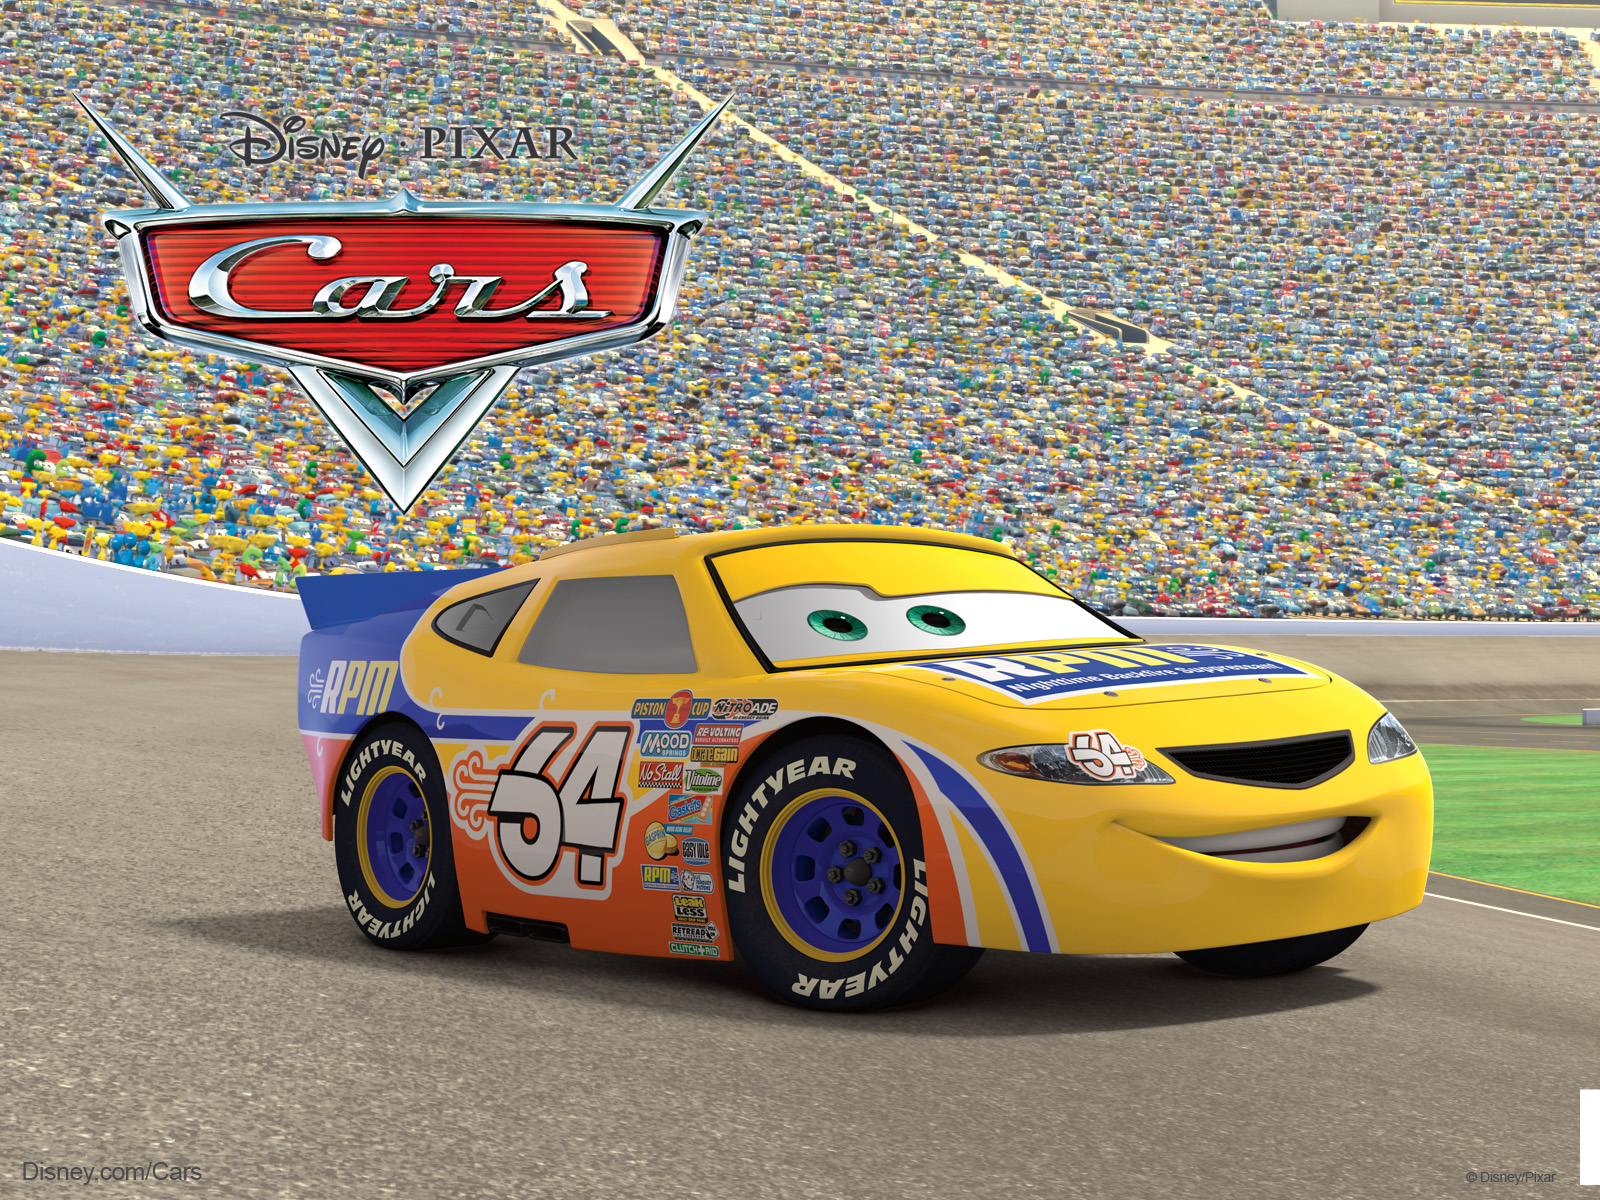 Snot rod the muscle car from pixar's cars movie desktop wallpaper.